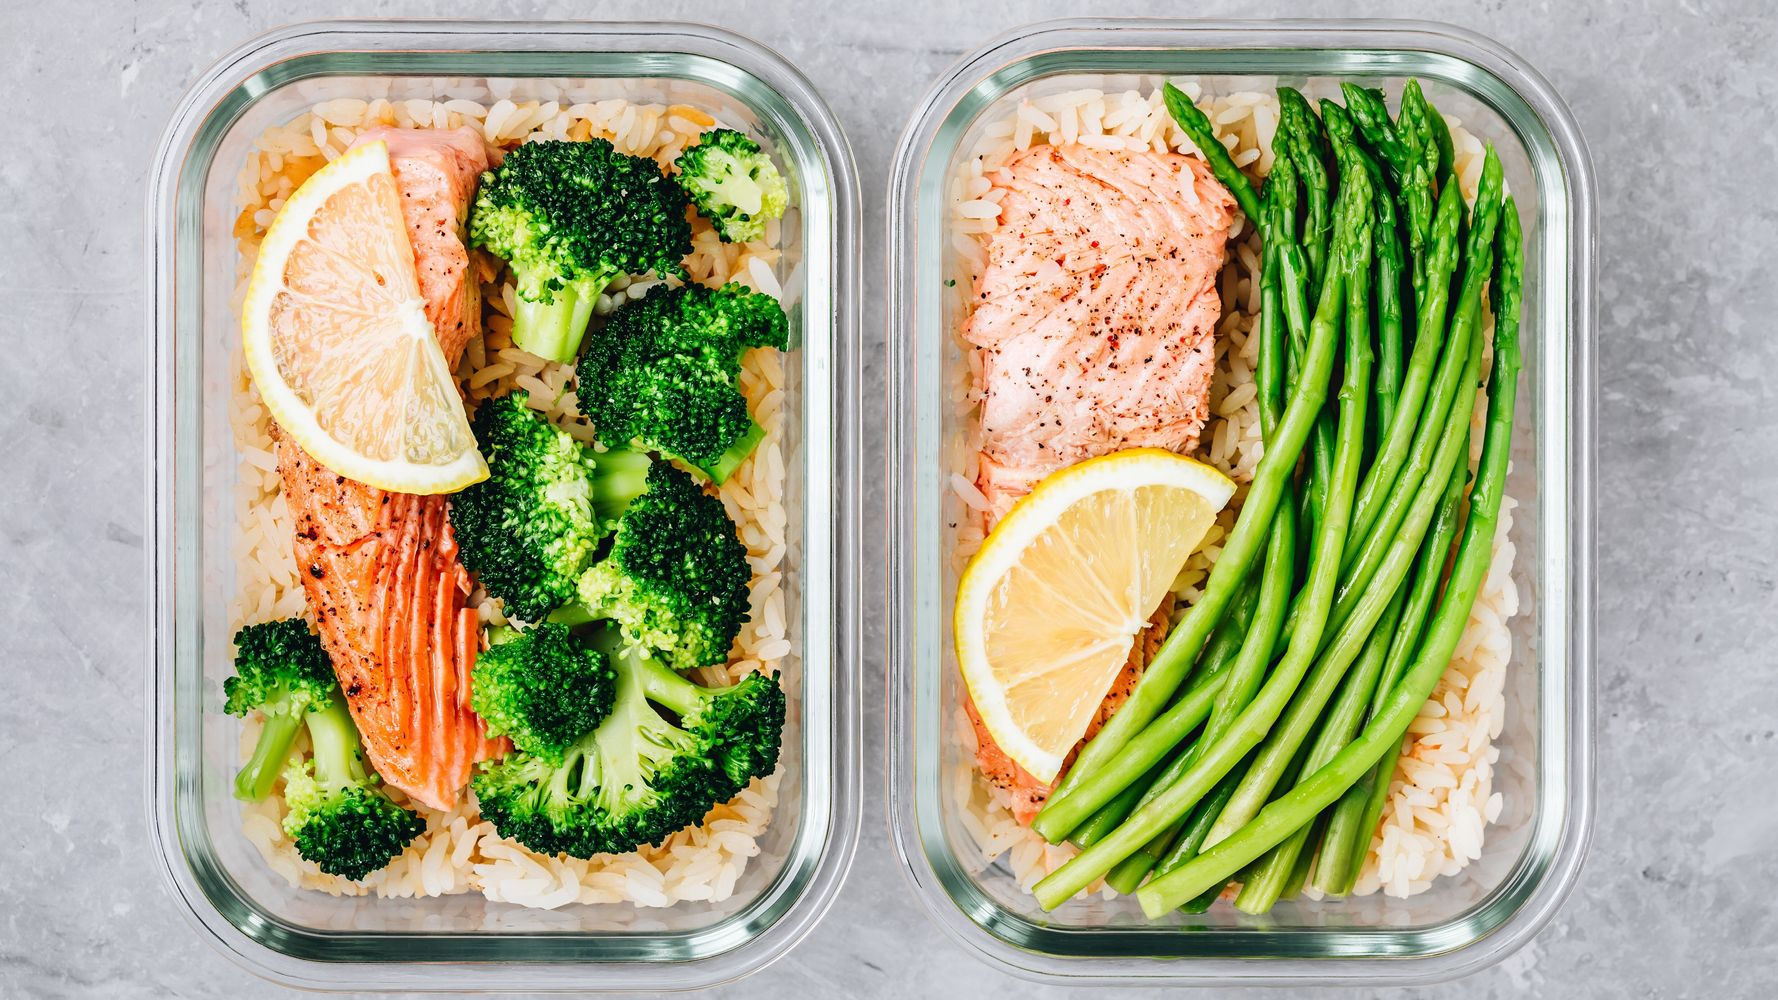 Freezer Meals And Meal Prep - cover